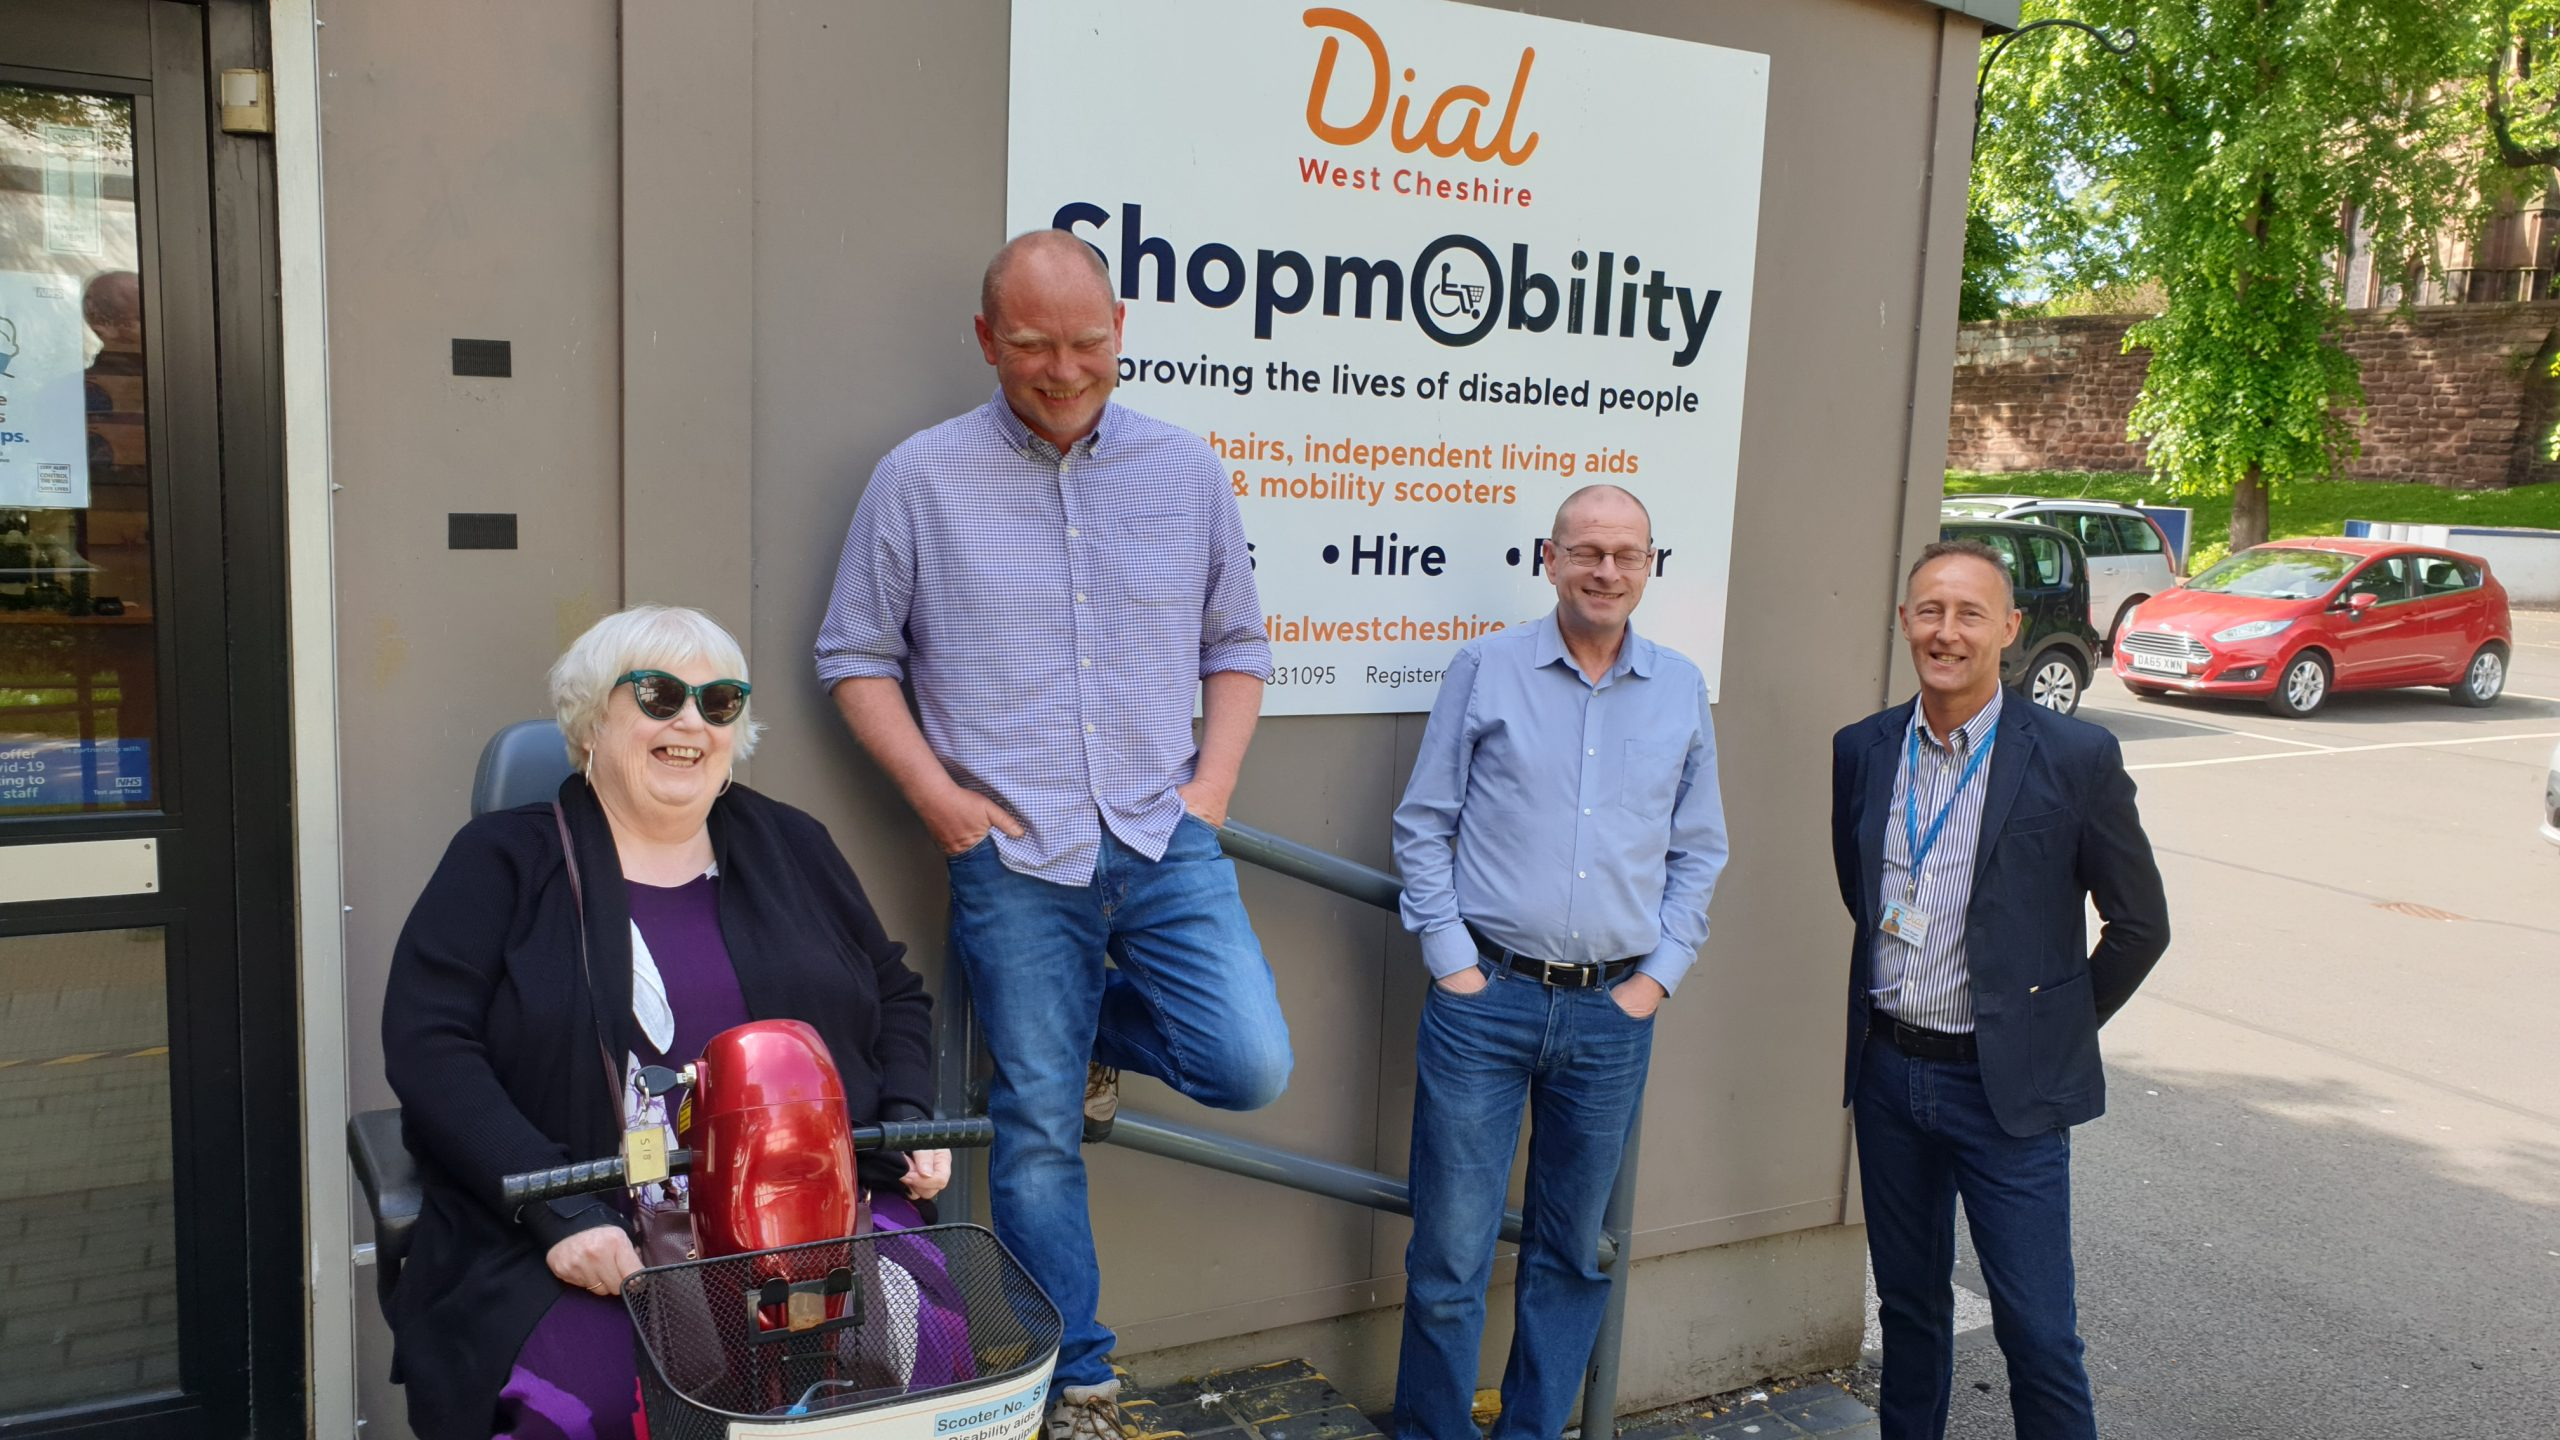 Dial West Cheshire supports new direction for ShopMobility UK with visit from national charity CEO.